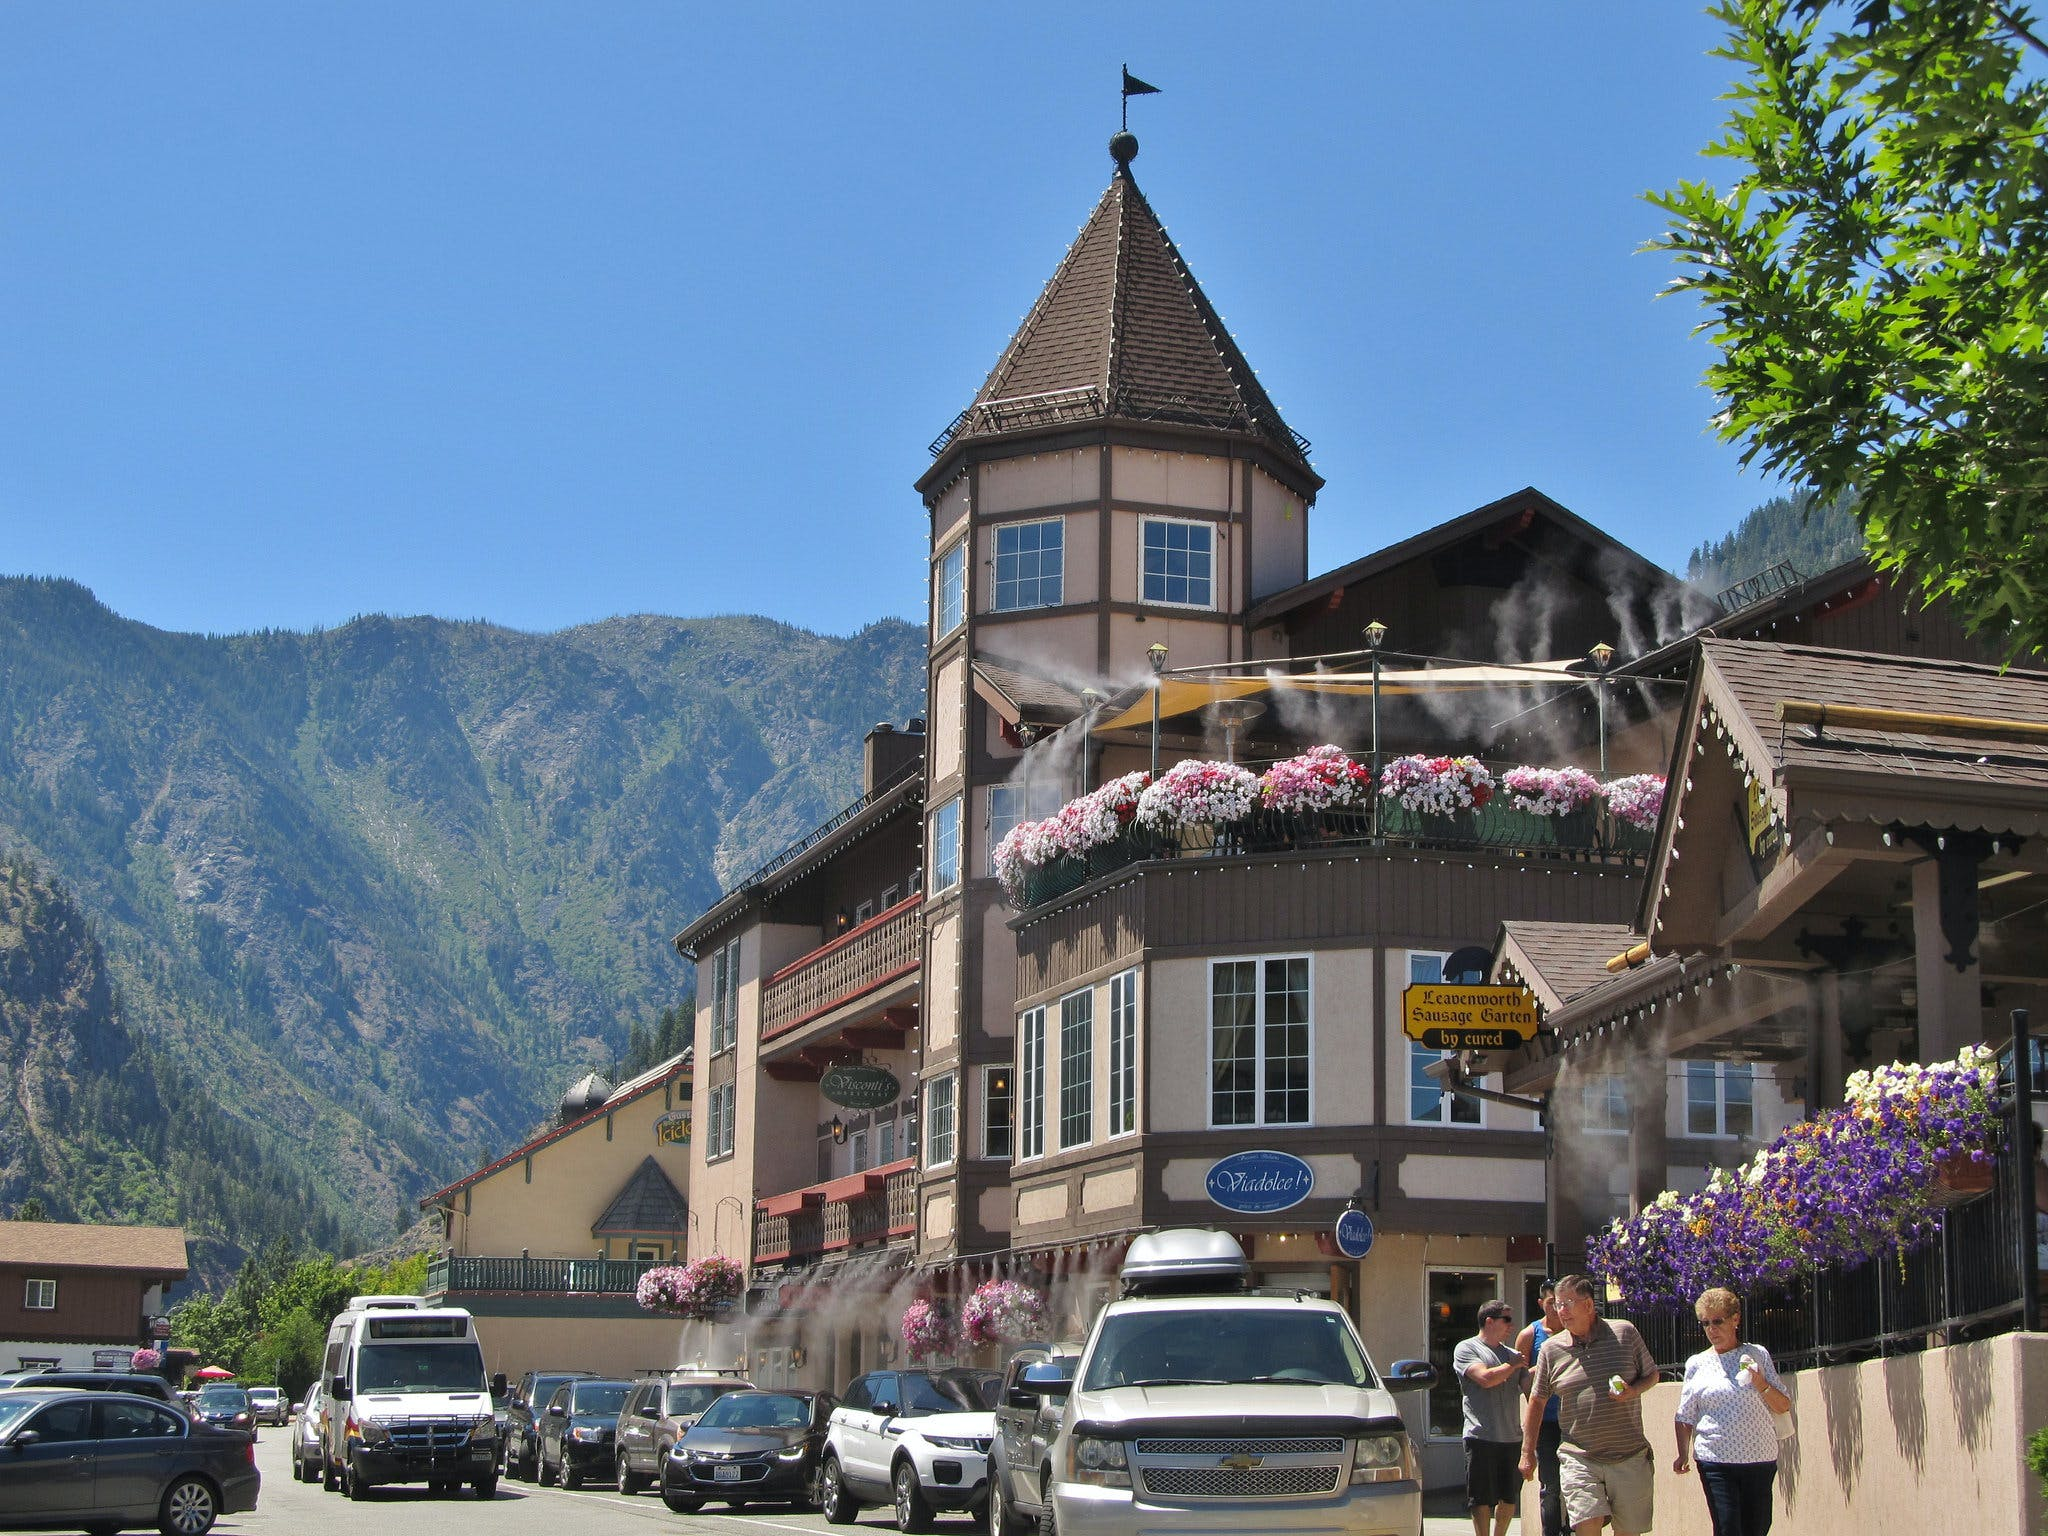 tourists in Downtown Leavenworth, Washington on a sunny day